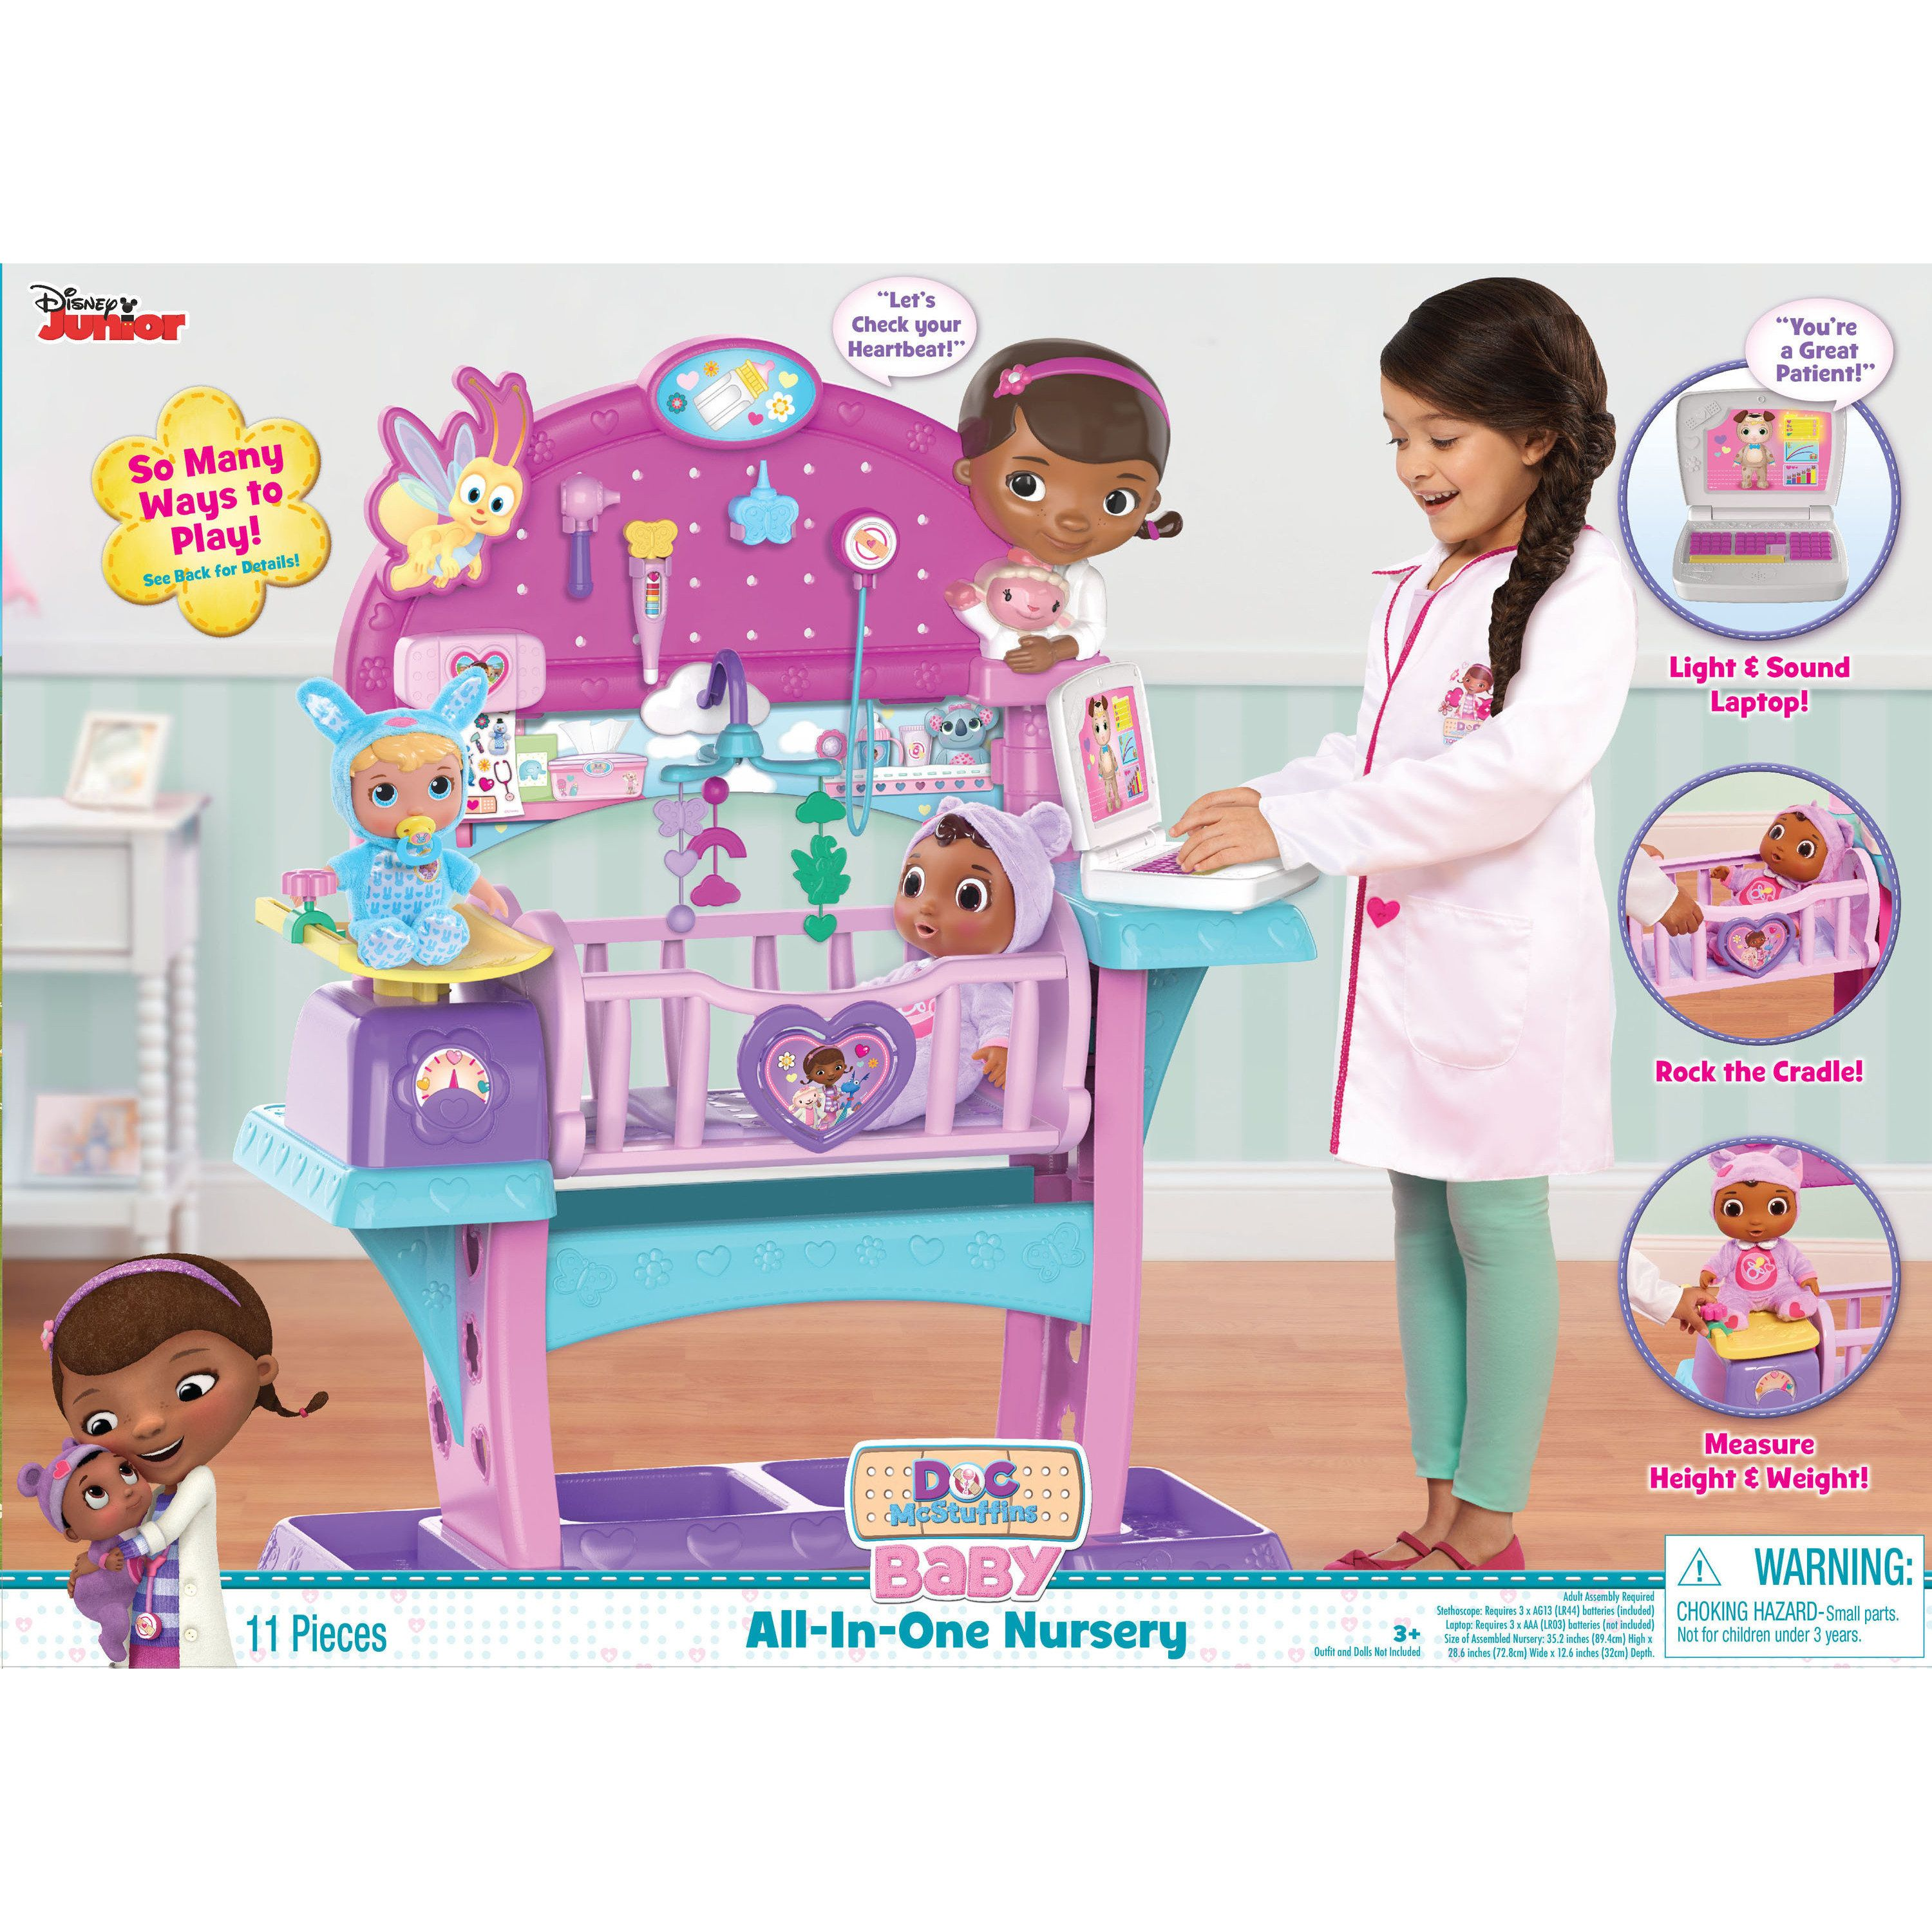 Doc Mcstuffins Baby All In One Nursery Walmart Com Doc Mcstuffins Toys Baby Nursery Sets Baby All In One